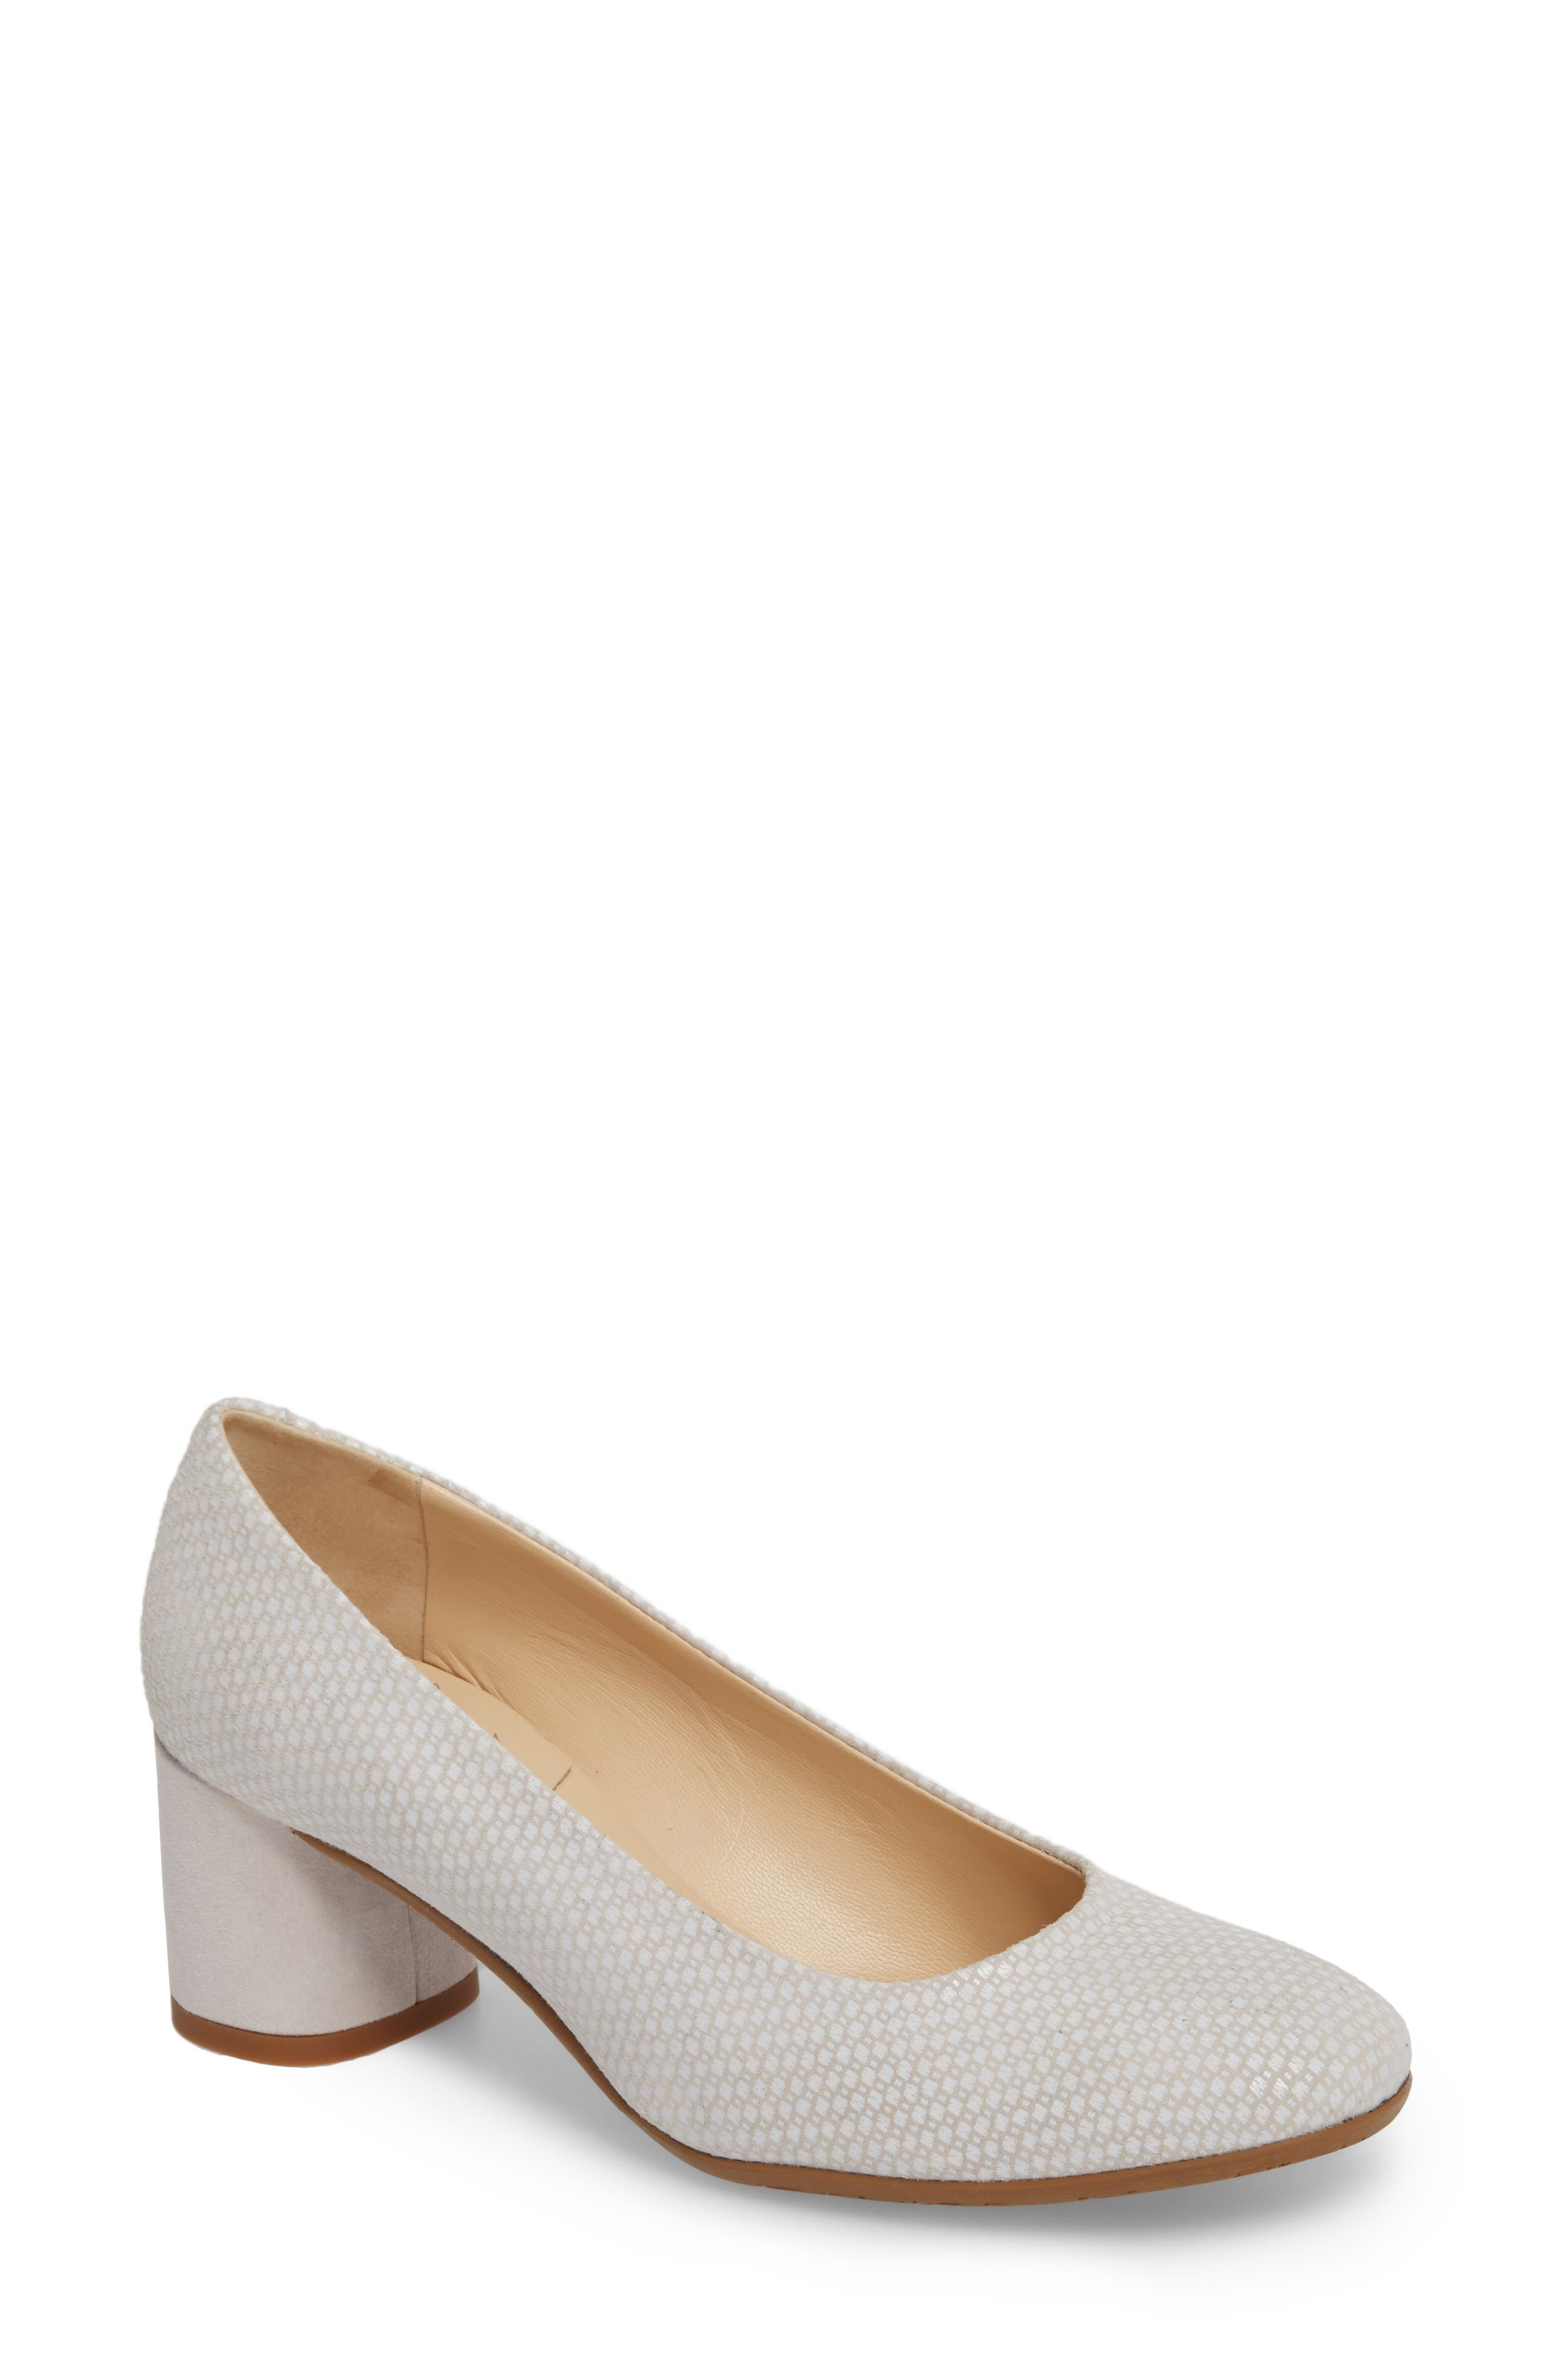 AMALFI BY RANGONI Rosso Pump in Beige/ White Leather